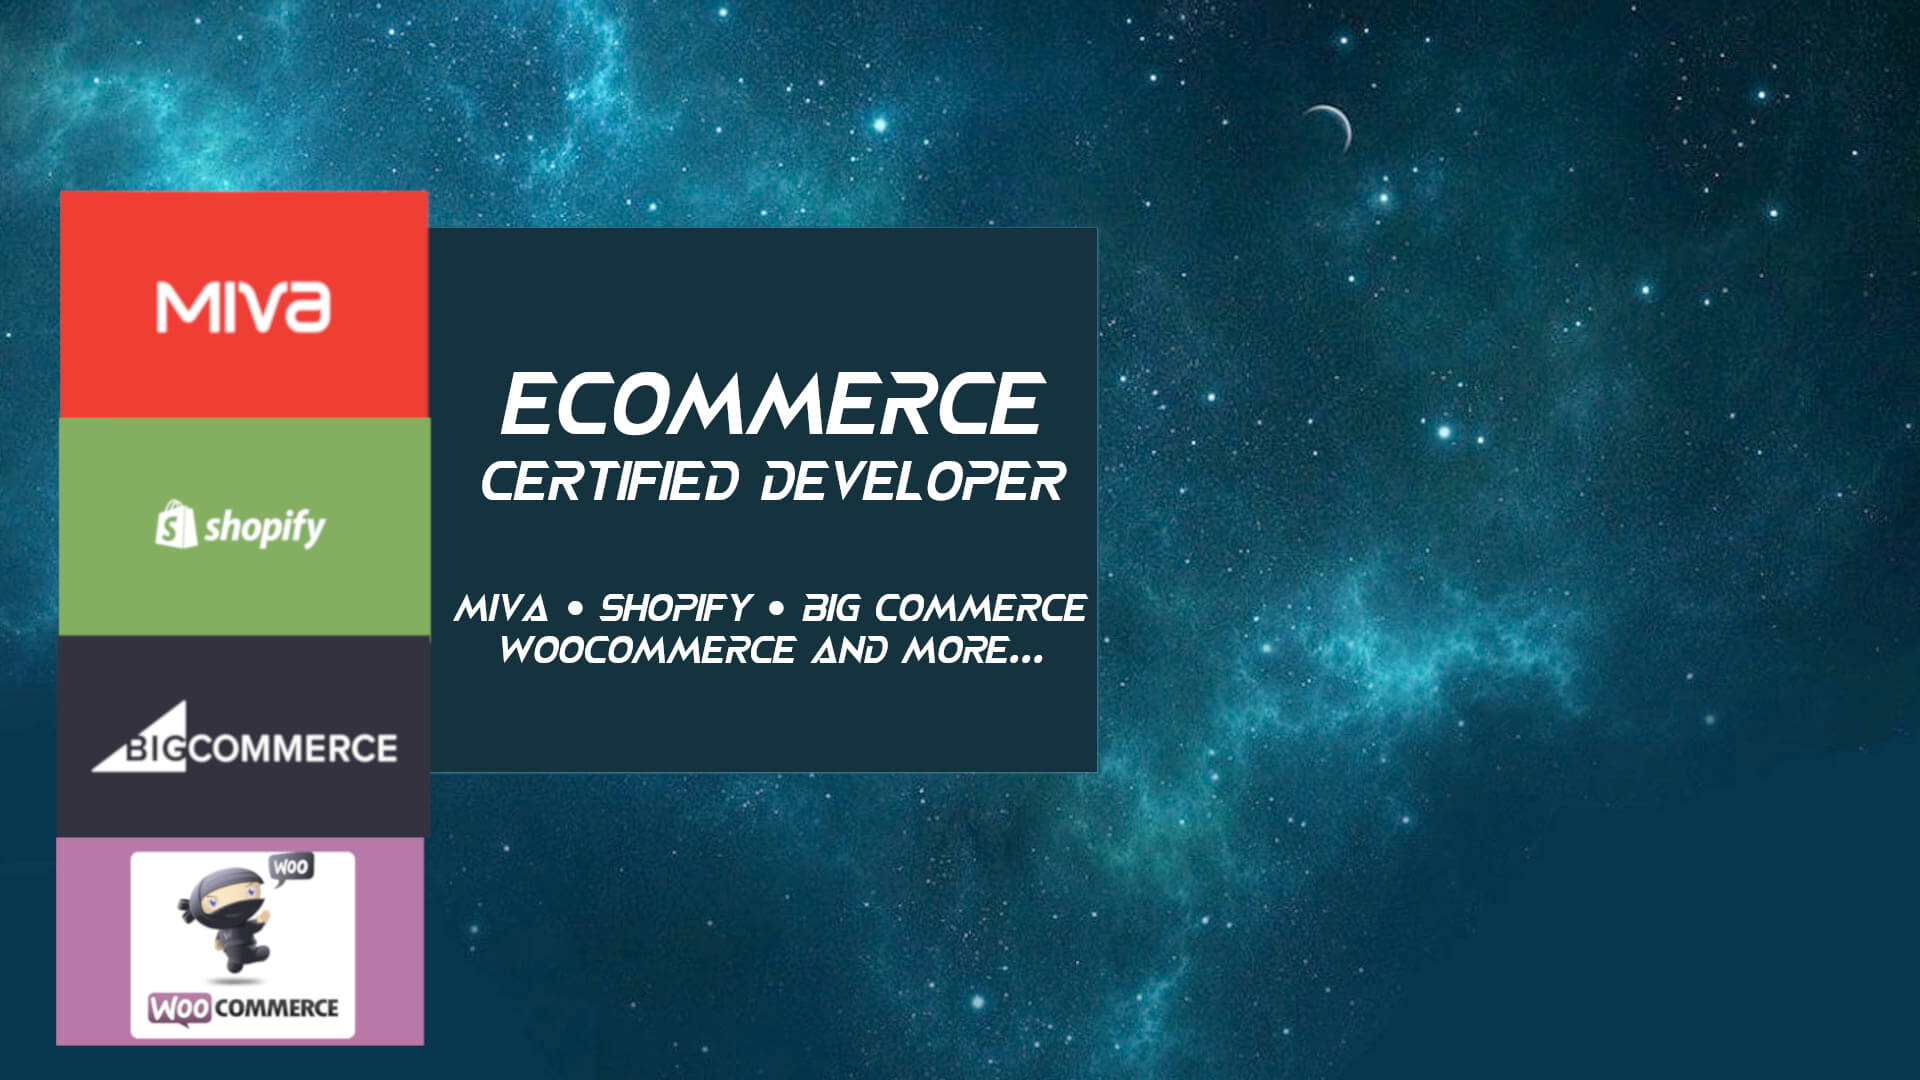 Ecommerce Developer Miva Shopify Big Commerce